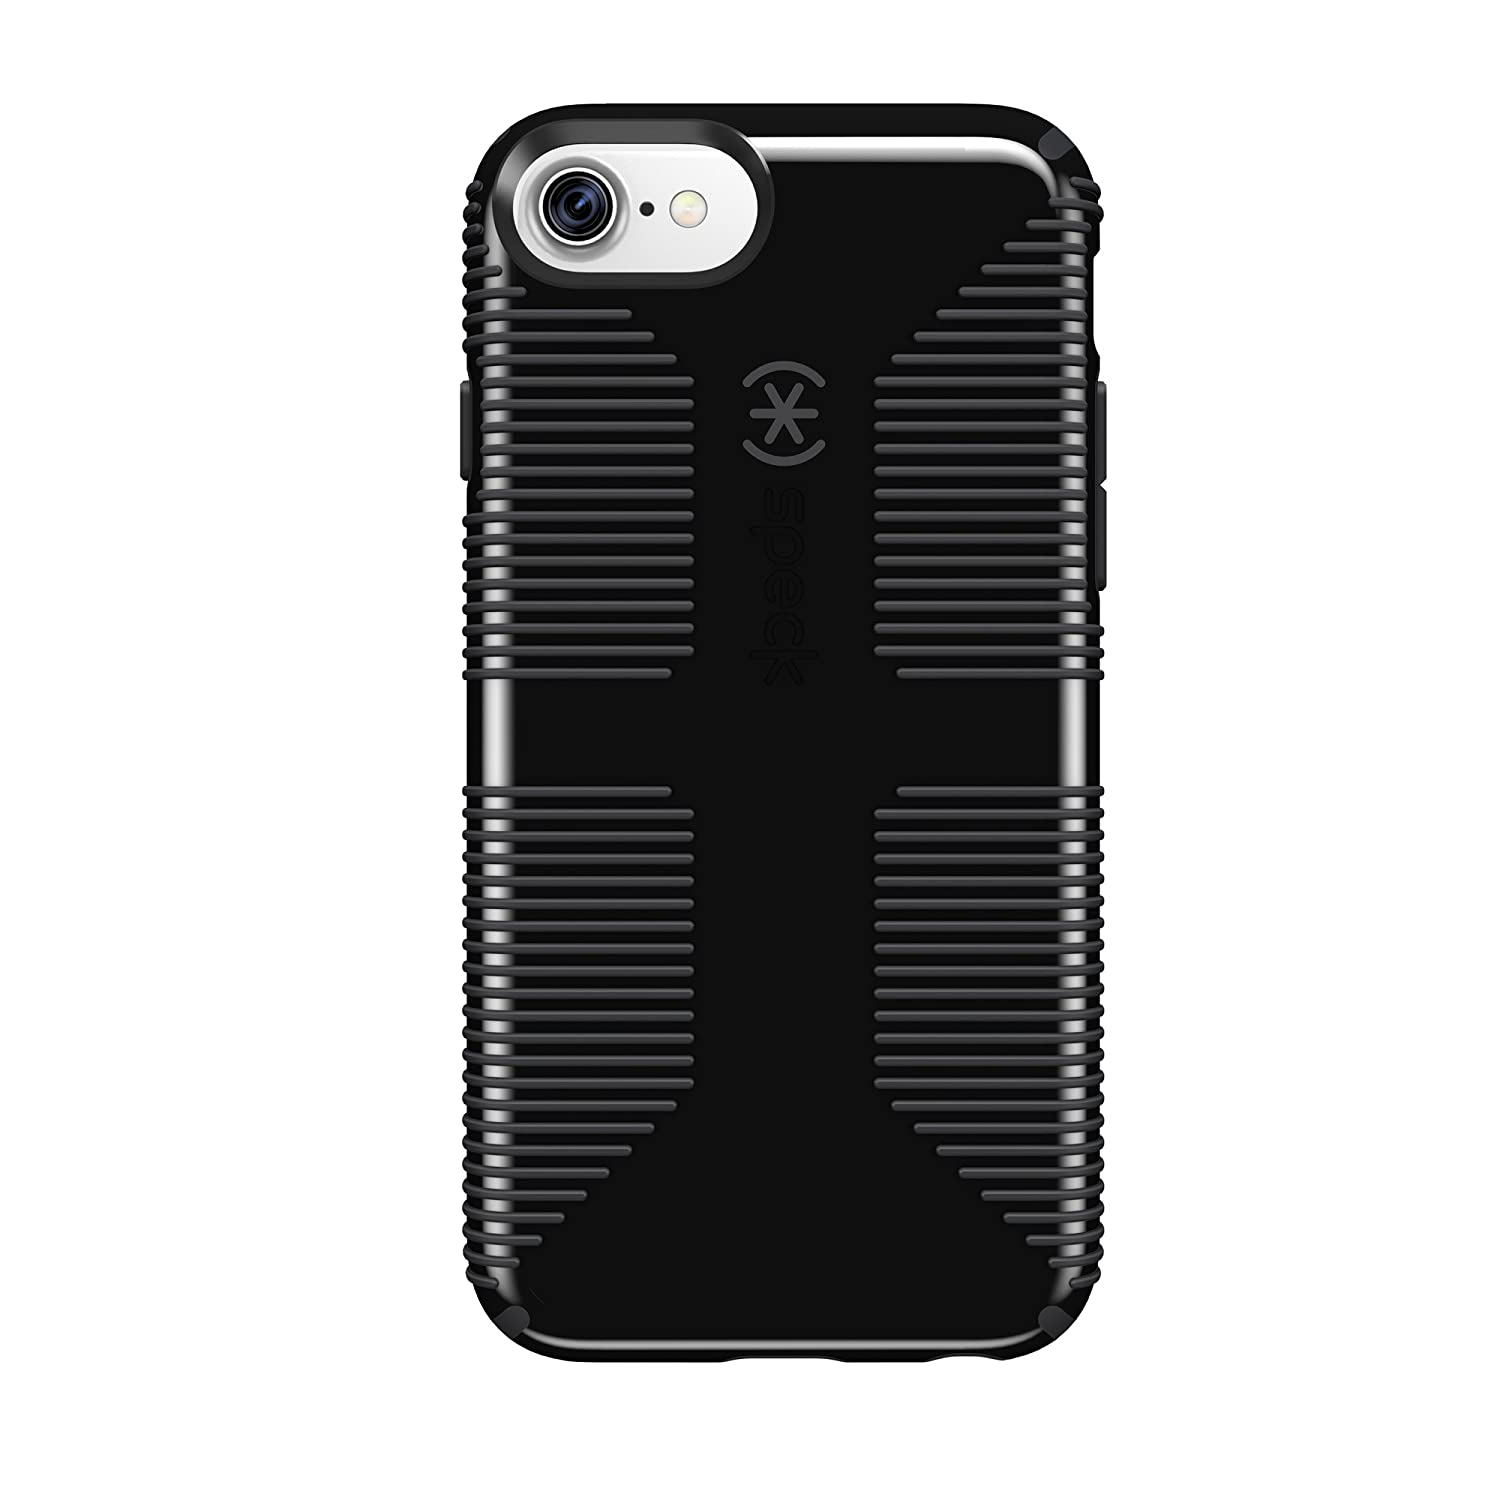 san francisco 586d0 8fb2a Speck Products CandyShell Grip Cell Phone Case for iPhone 8/7/6S/6 -  Black/Slate Grey